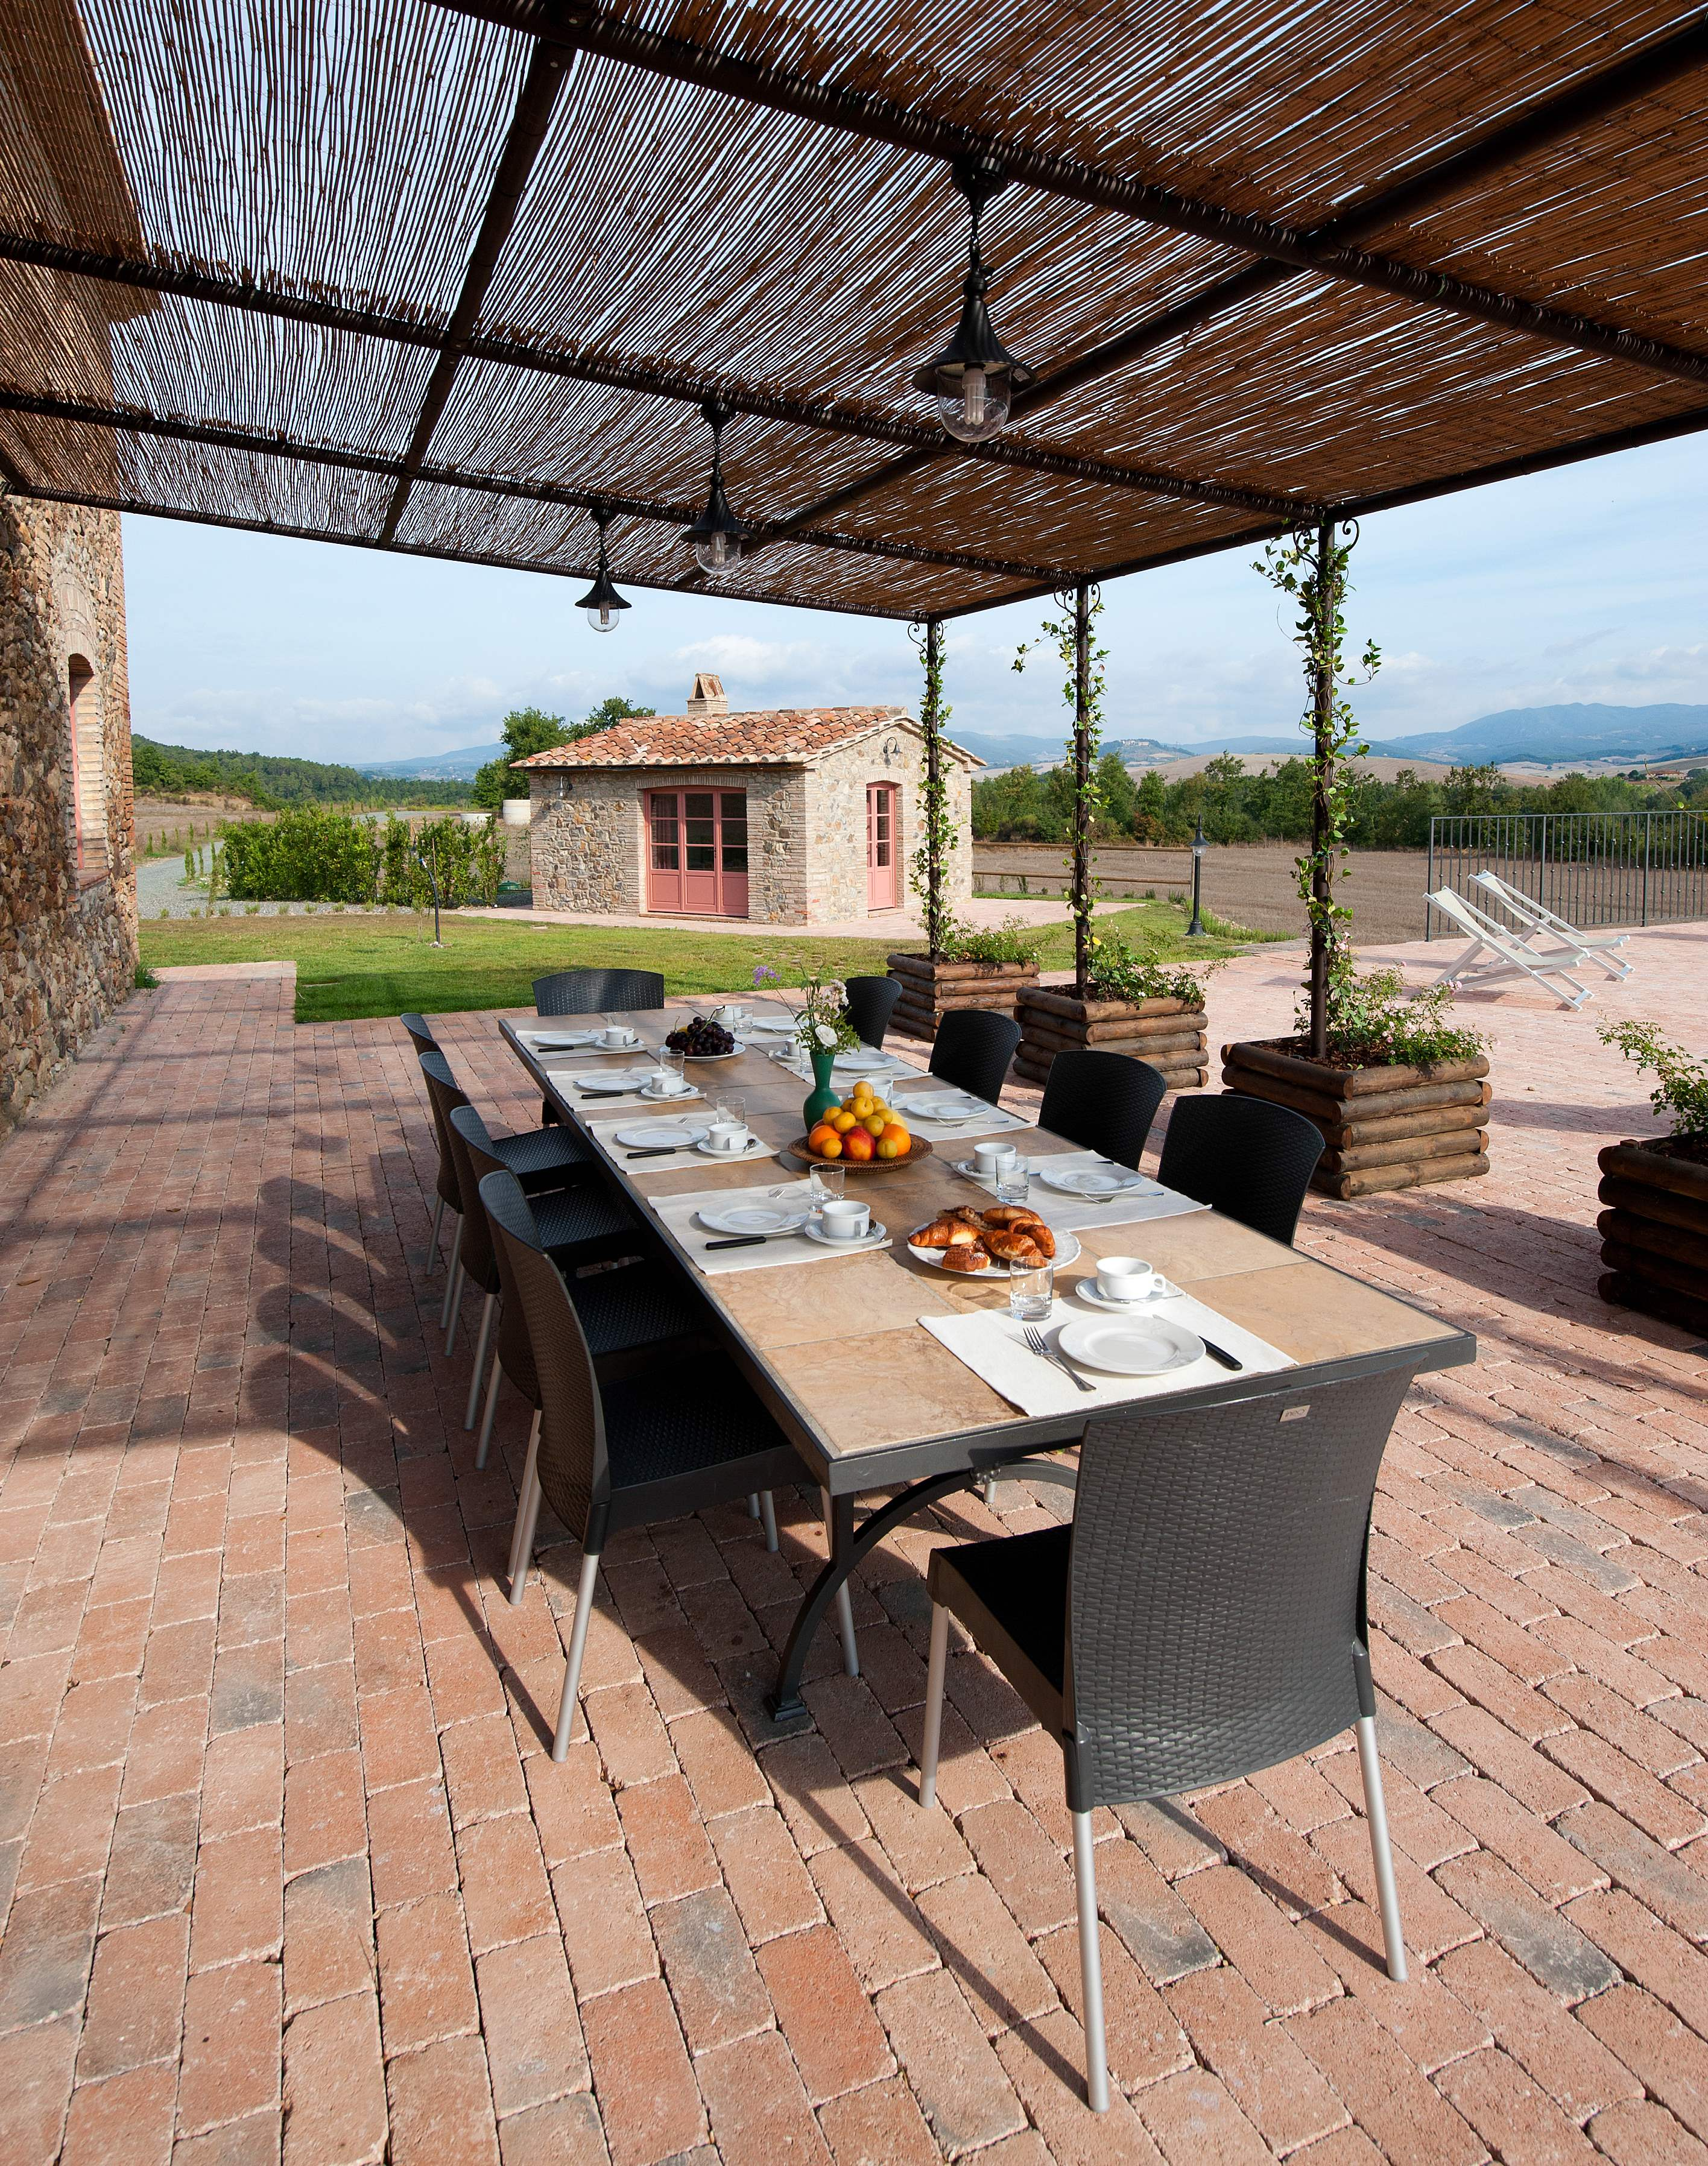 Podere I Gotti, 5 bedroom villa in Tuscany Coast, Tuscany Photo #3